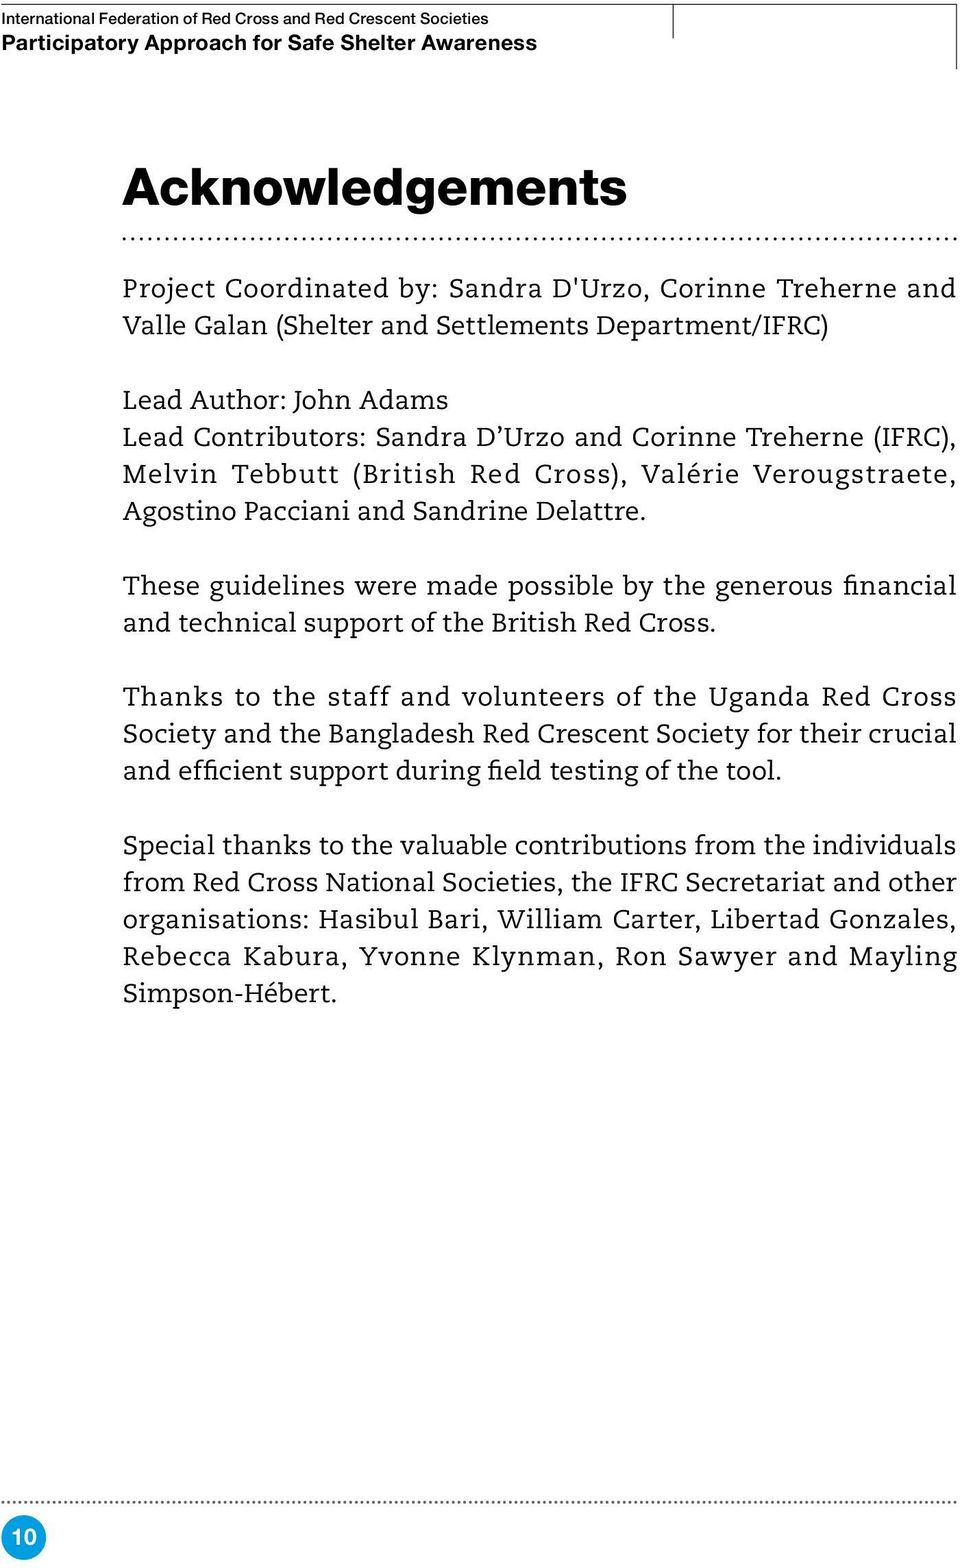 These guidelines were made possible by the generous financial and technical support of the British Red Cross.